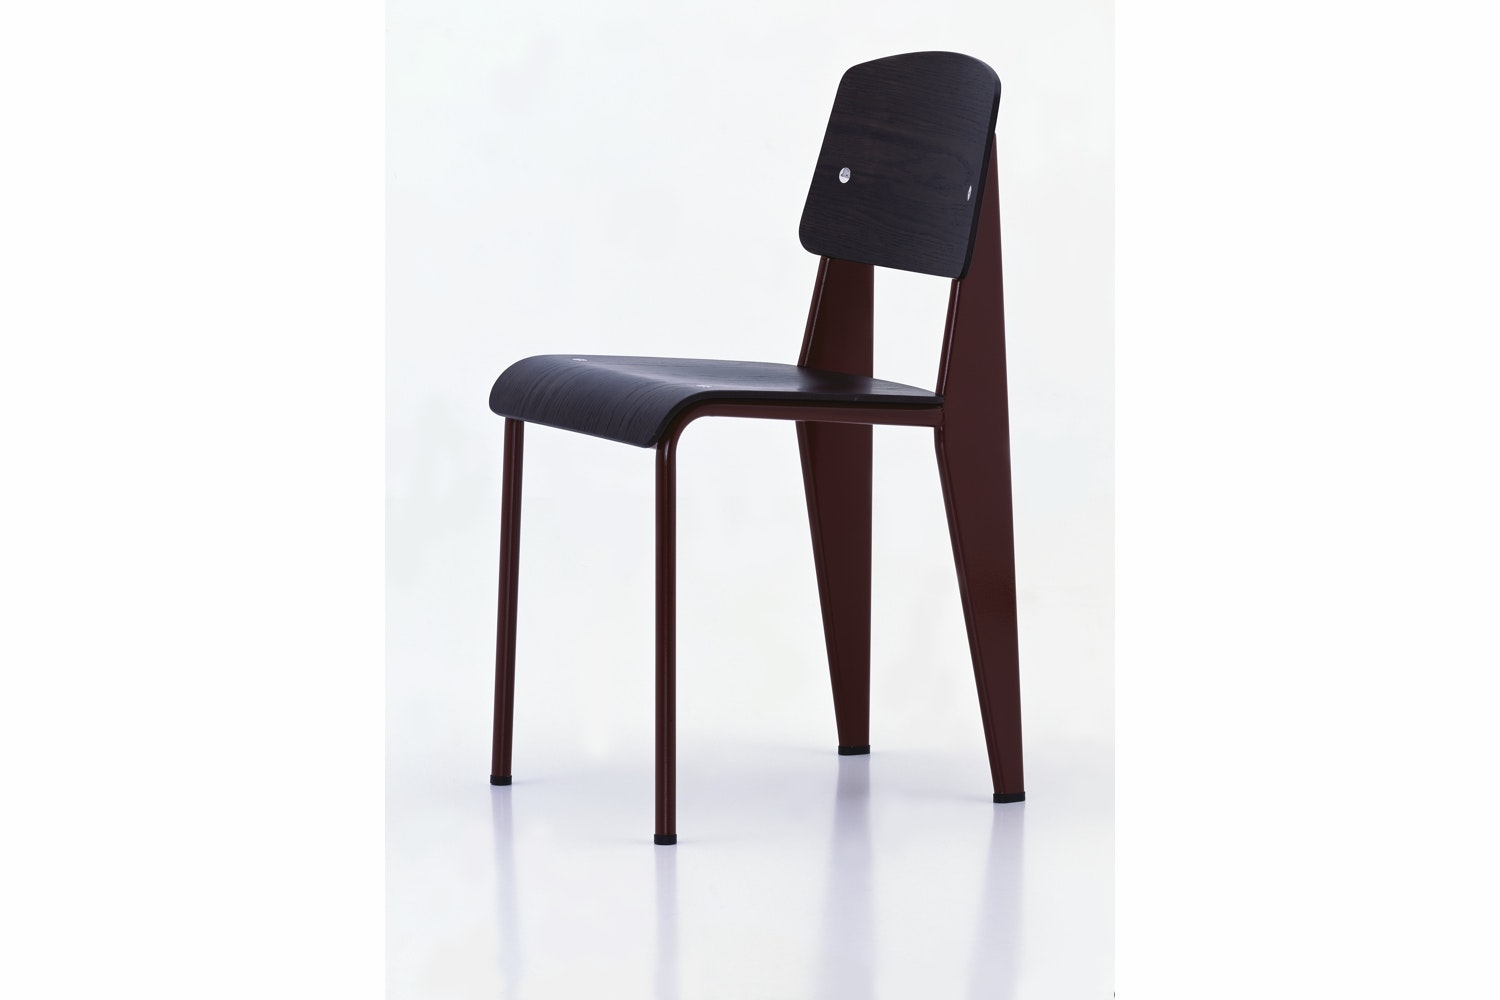 Standard Chair by Jean Prouve for Vitra